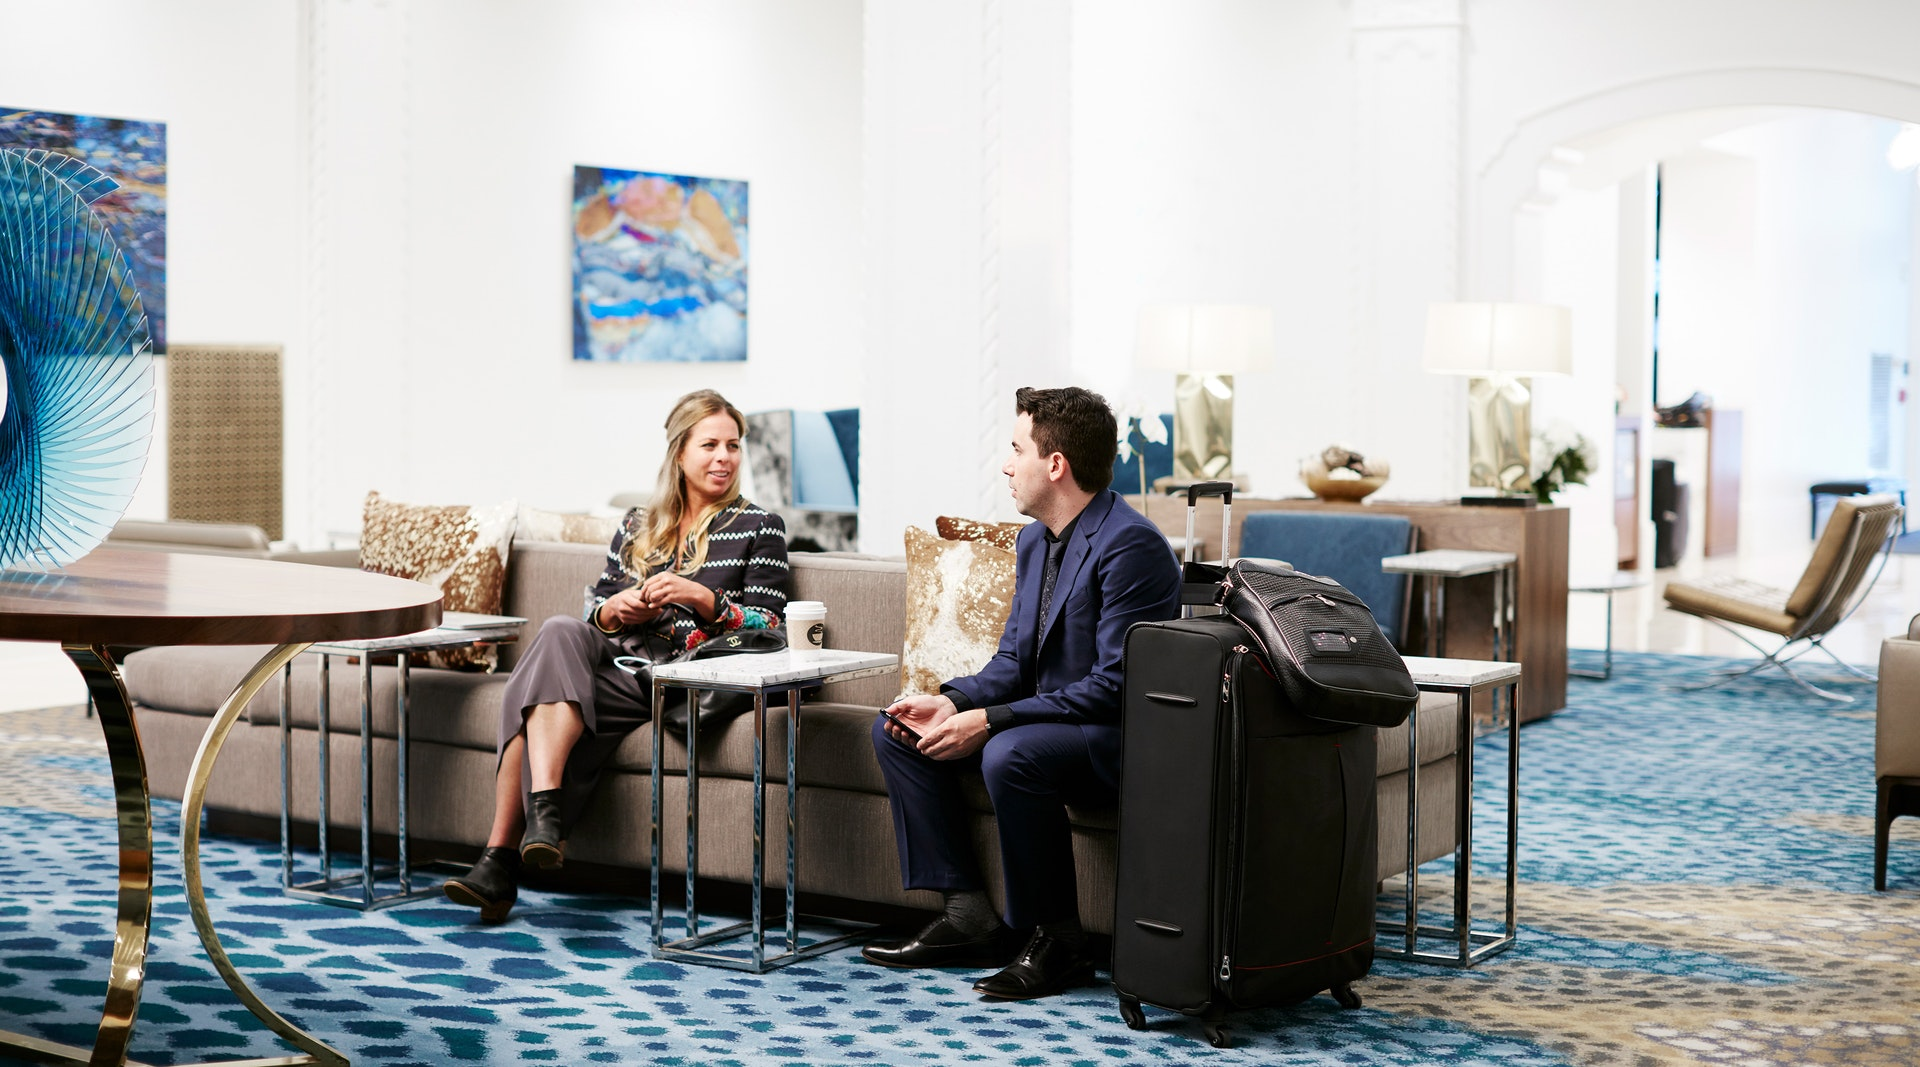 Club Quarters Hotels - a Boutique Hotel for Business Travel